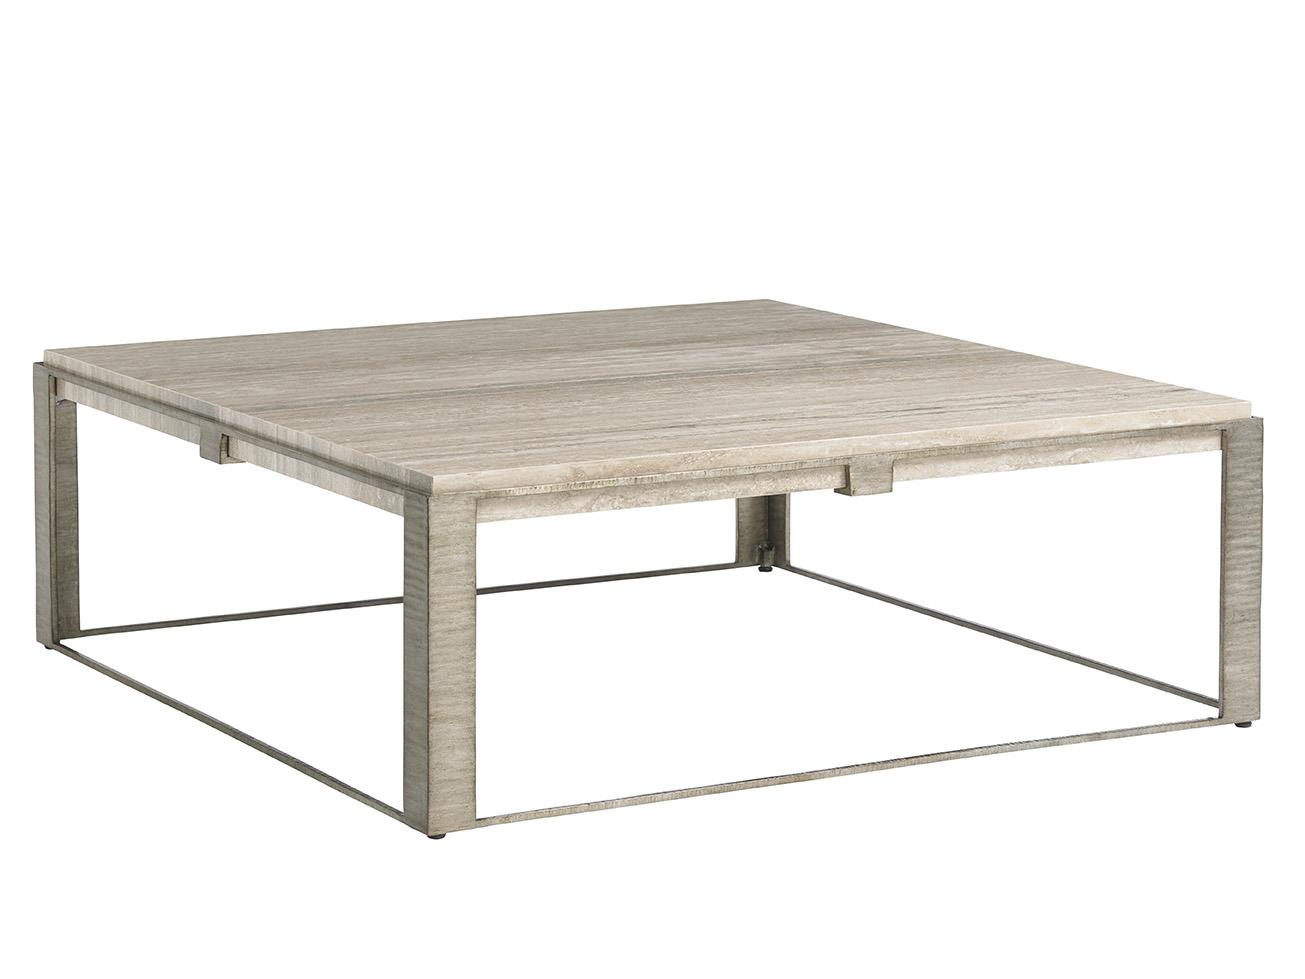 LAUREL CANYON Stone Canyon Cocktail Table by Lexington at Baer's Furniture